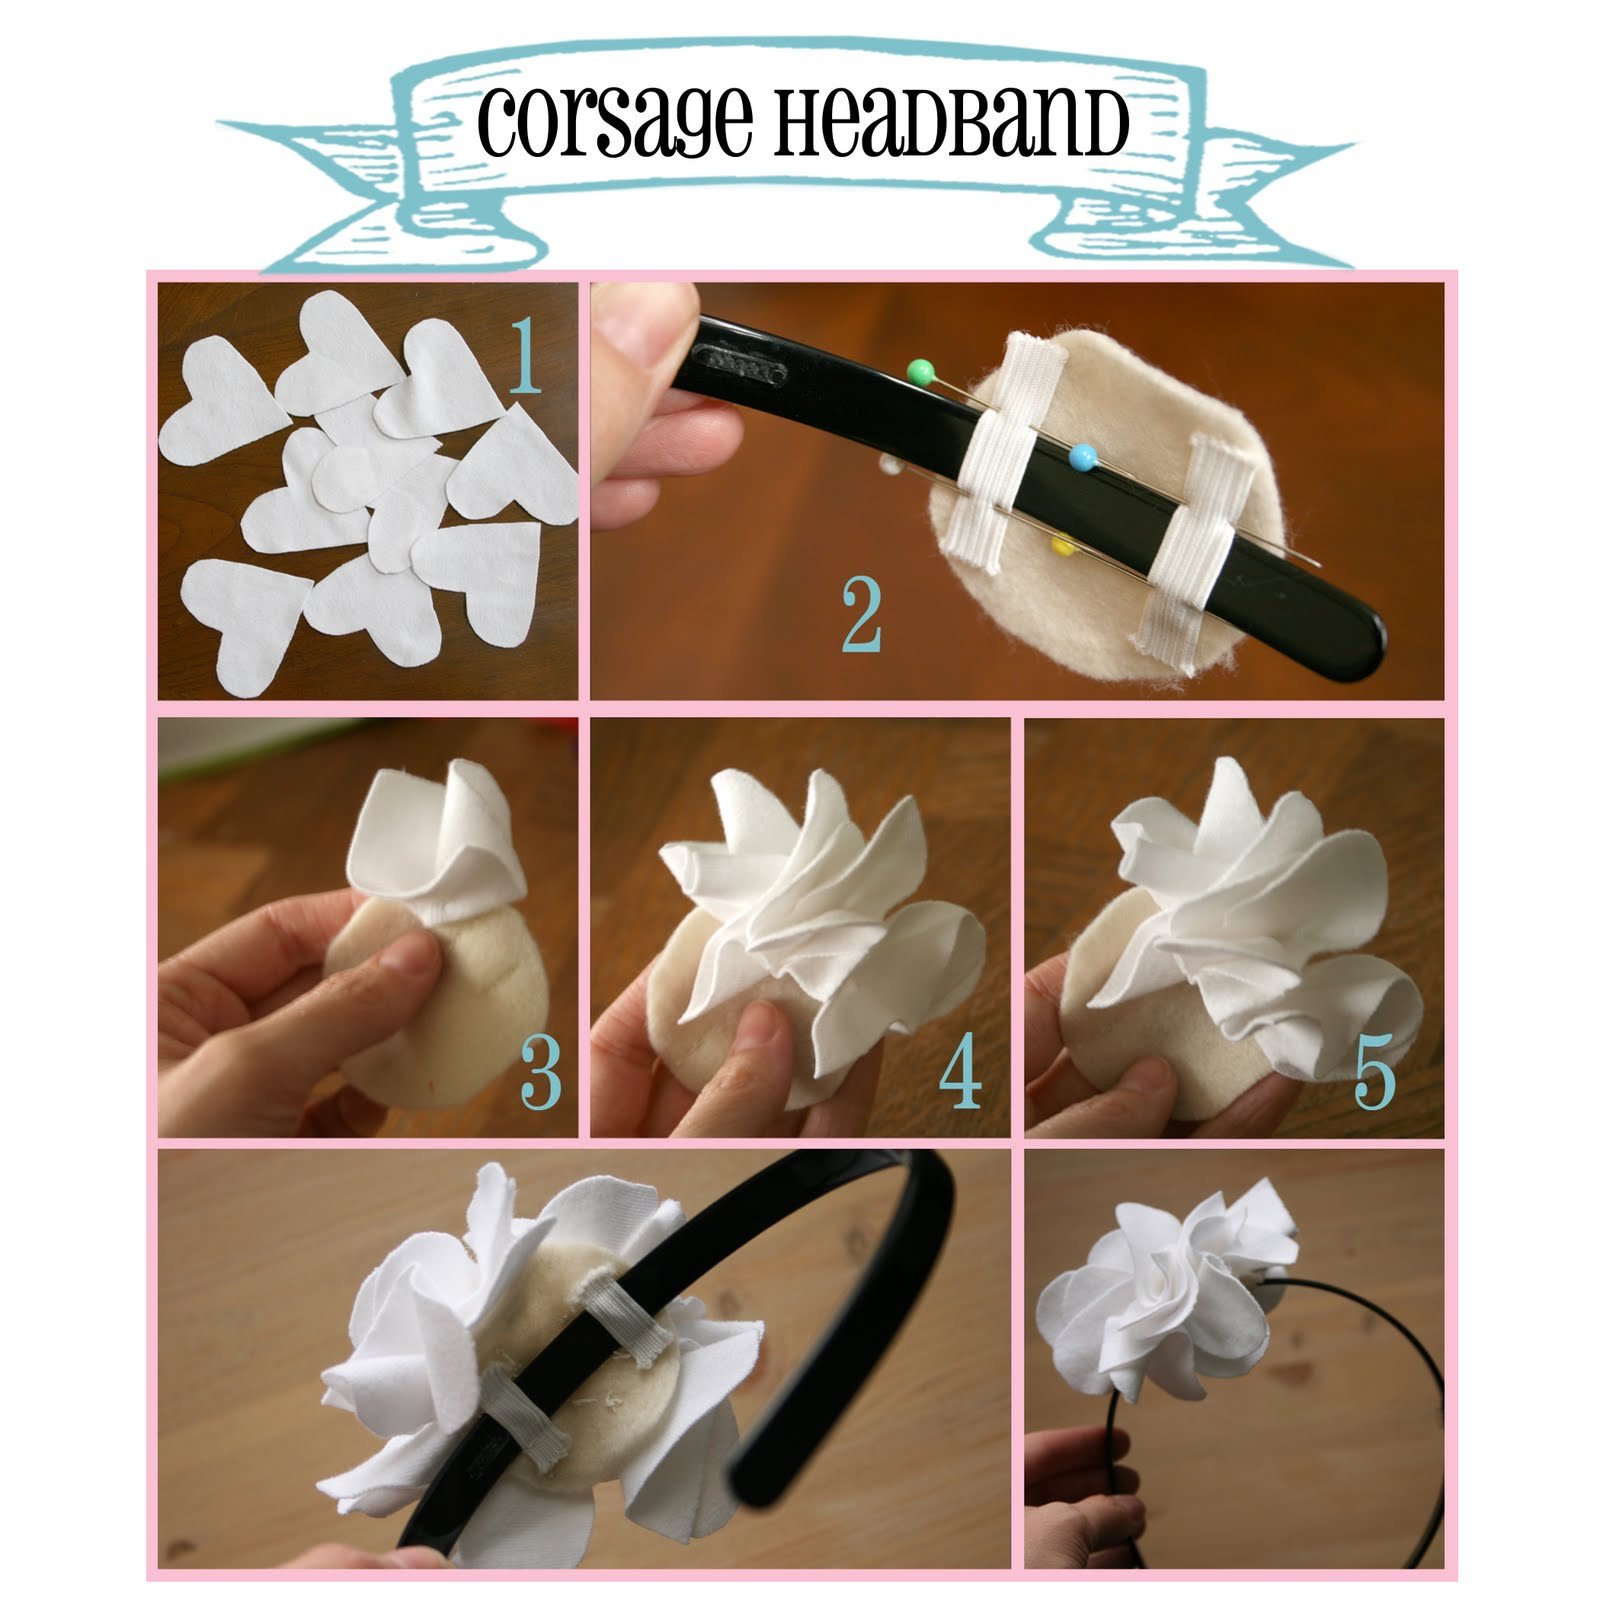 corsage+headband+tutorial+copy.jpg